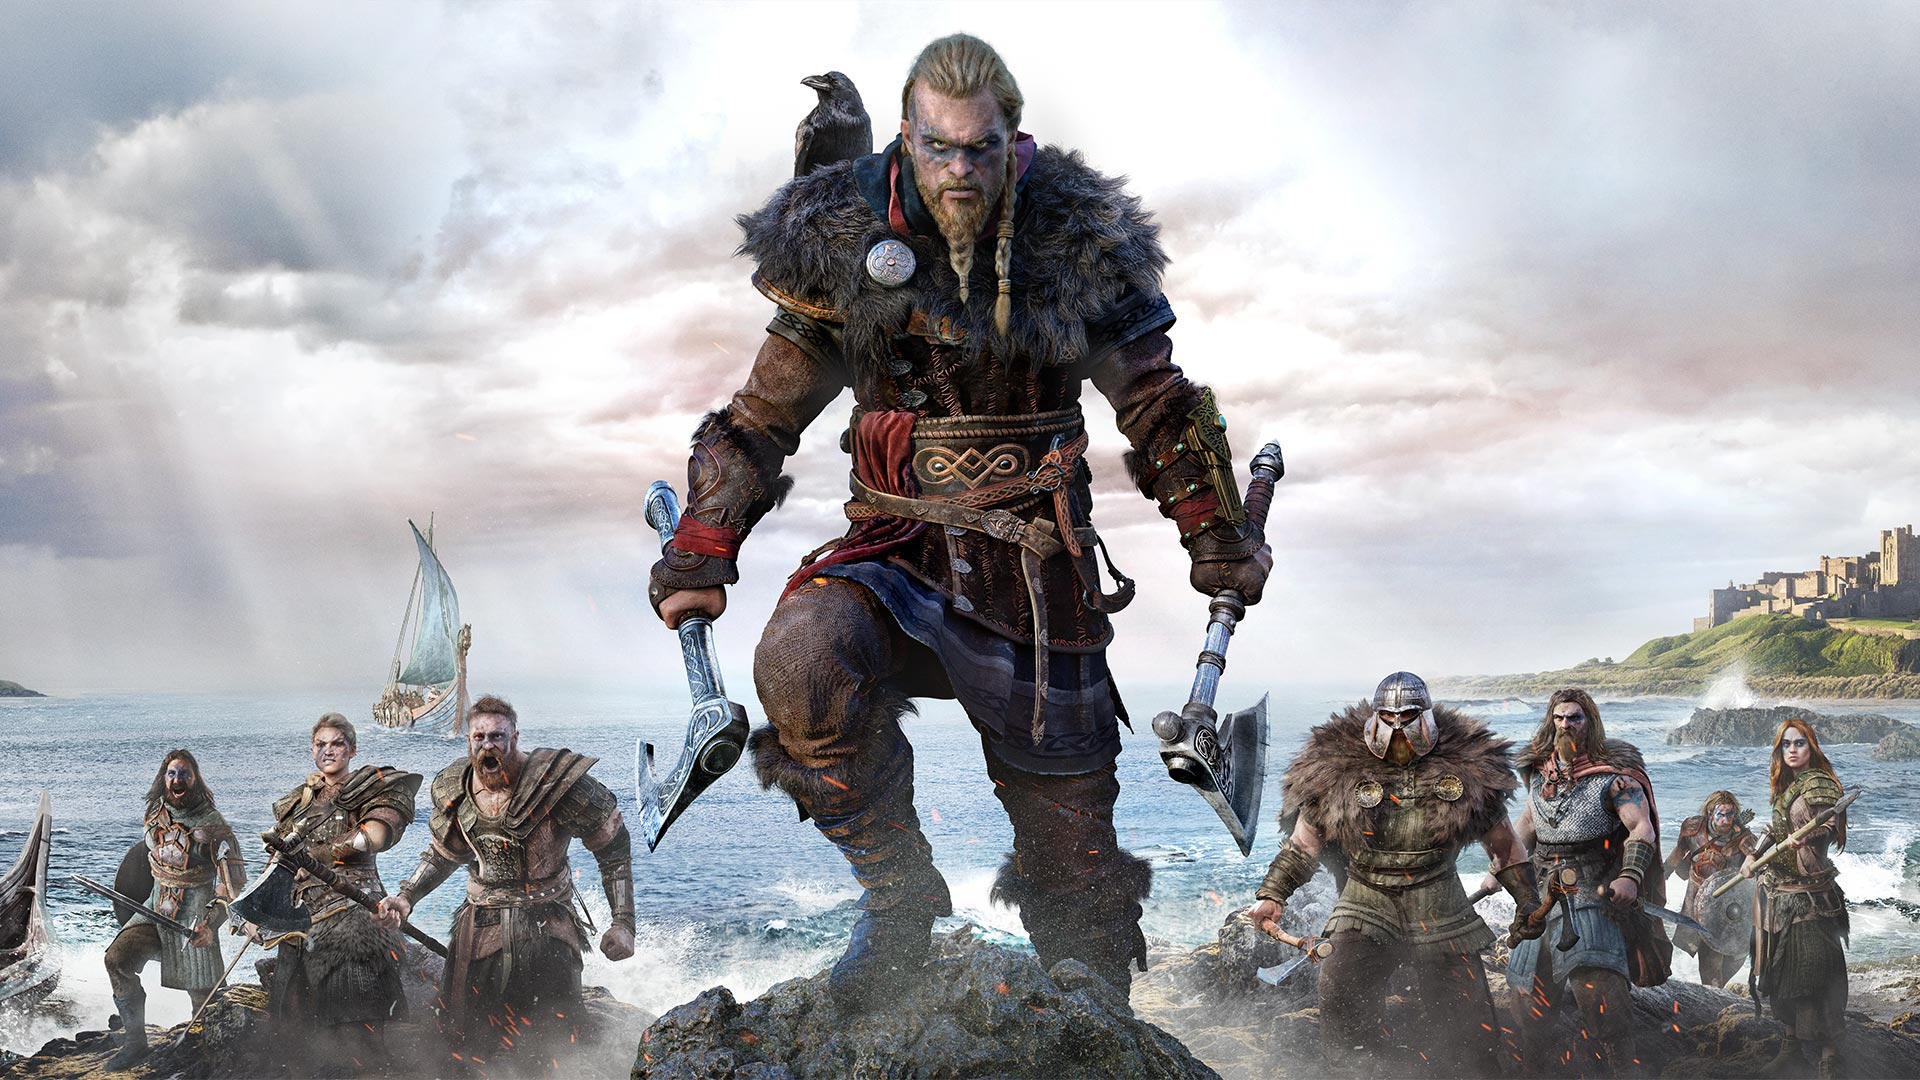 Assassin's Creed Valhalla: The Viking Age has come!